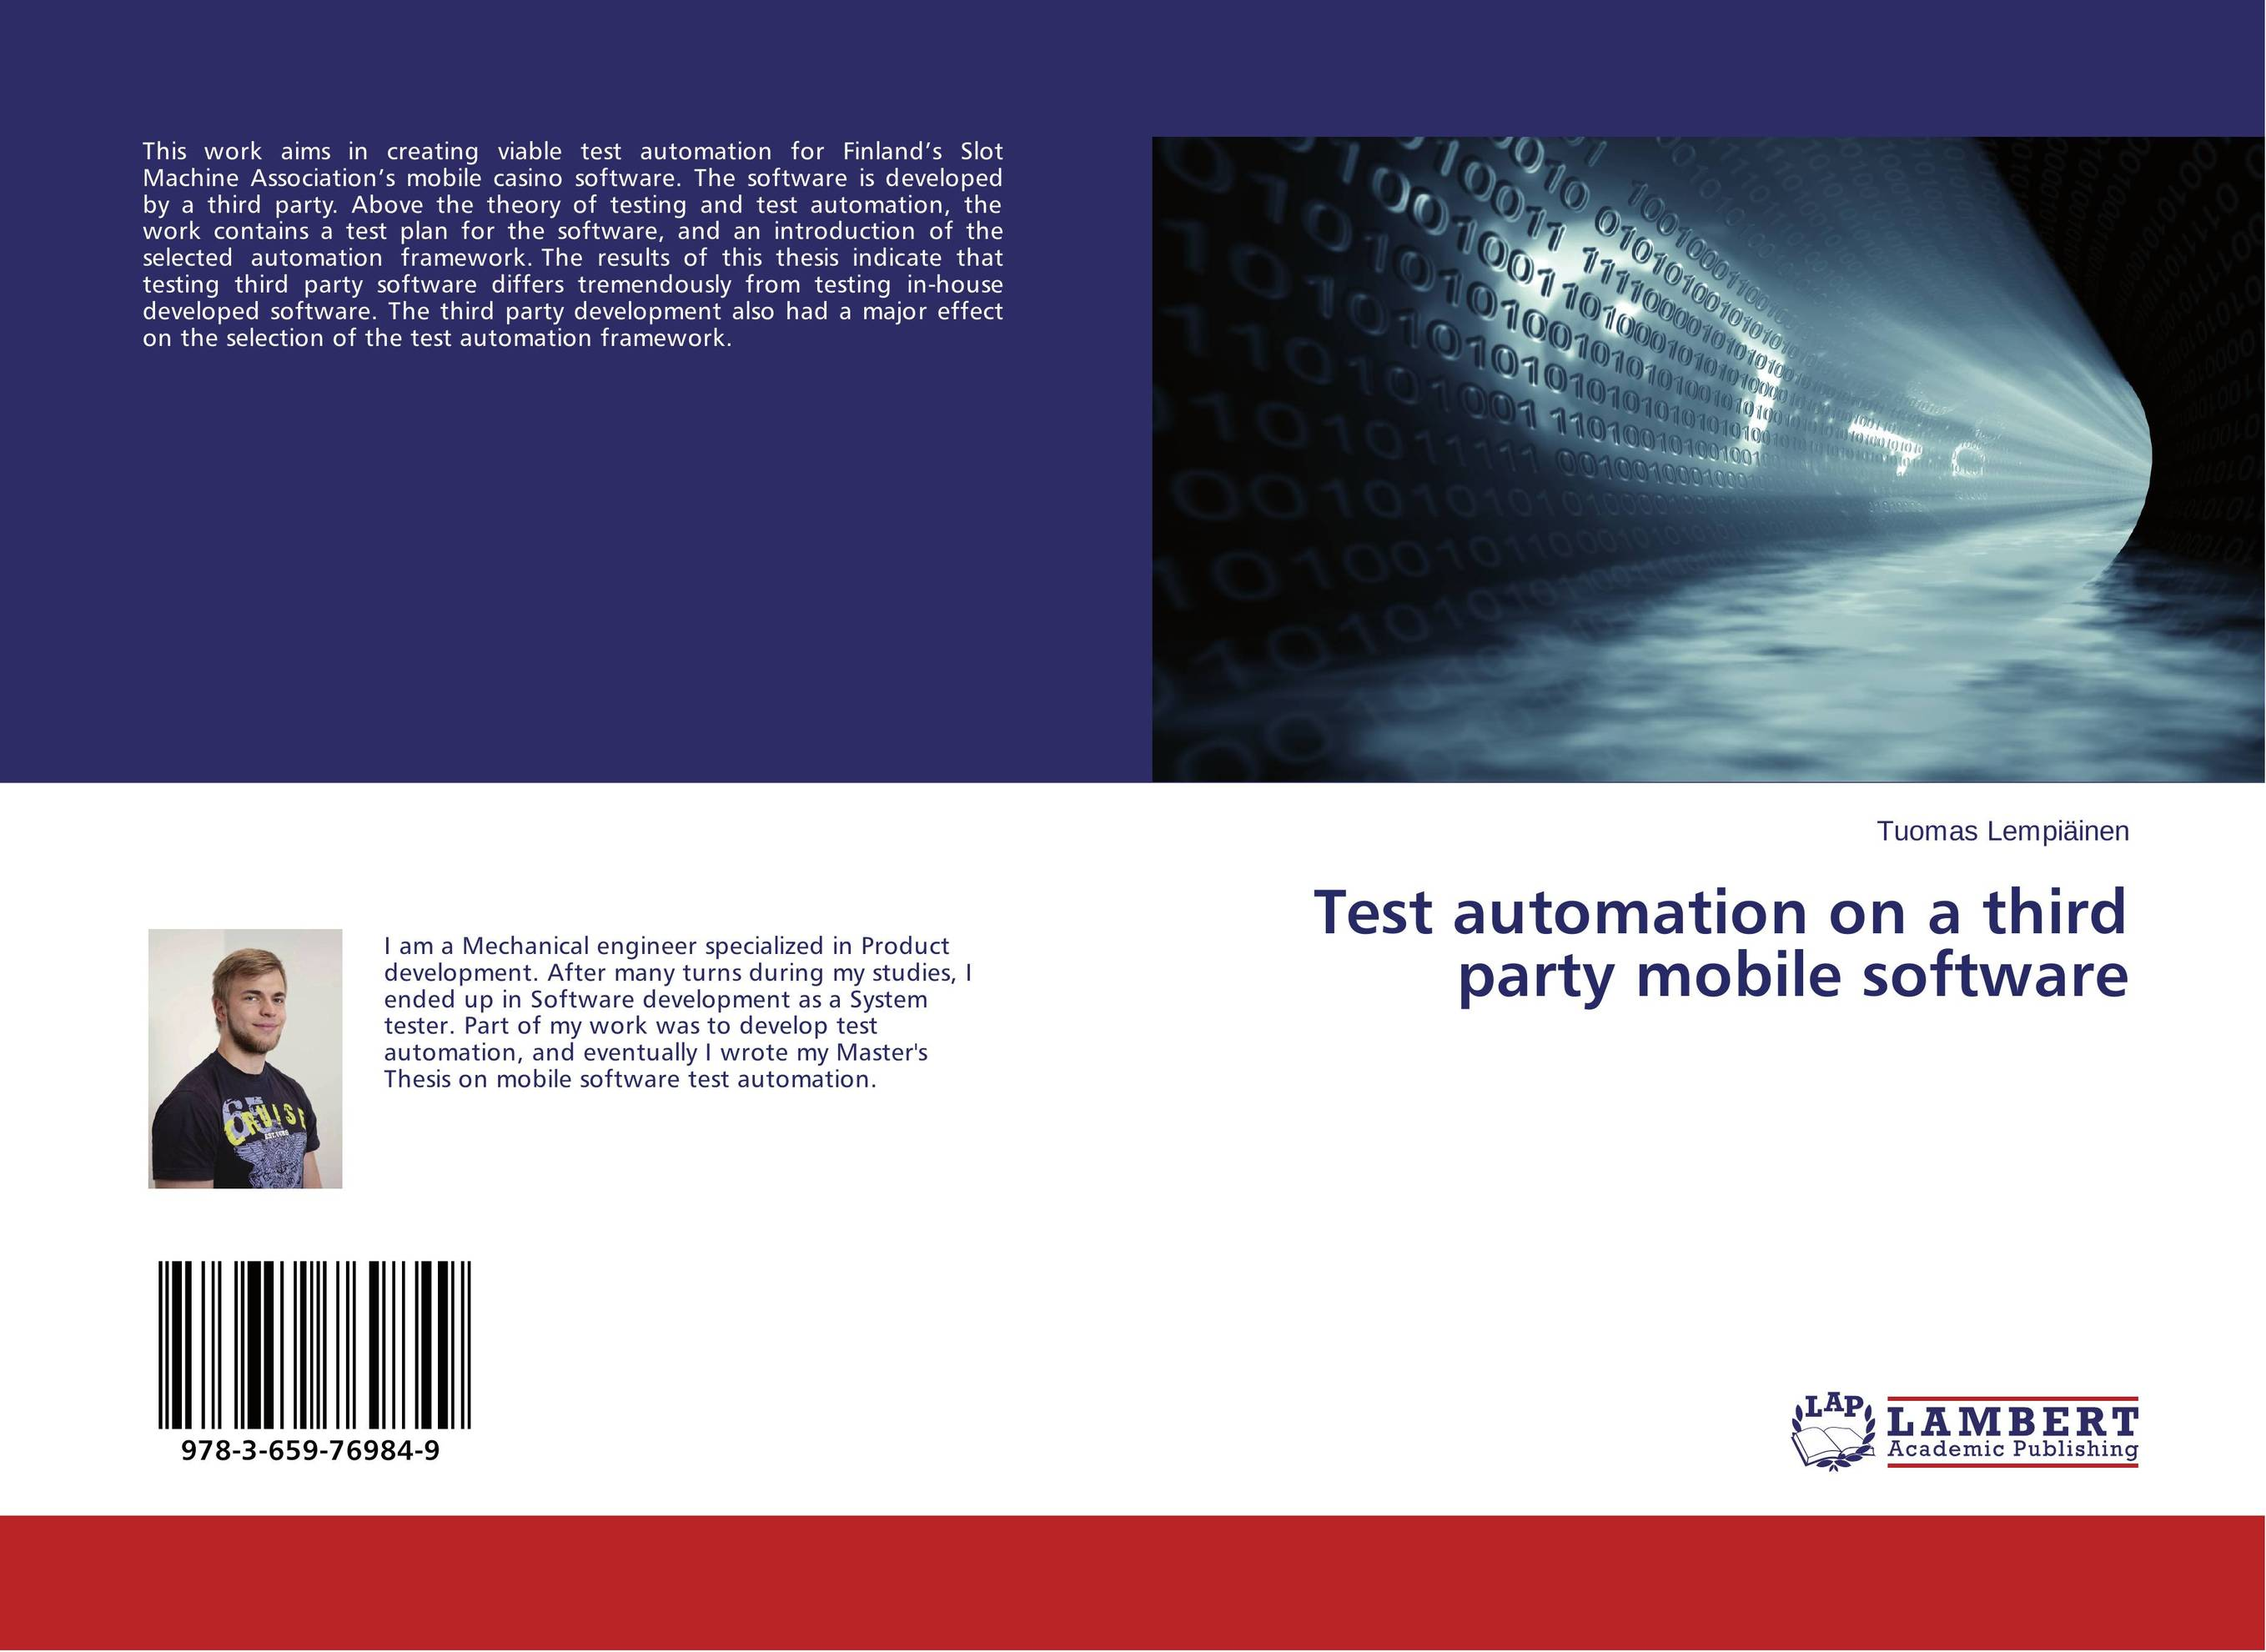 Test automation on a third party mobile software theory and principles of psychological test development